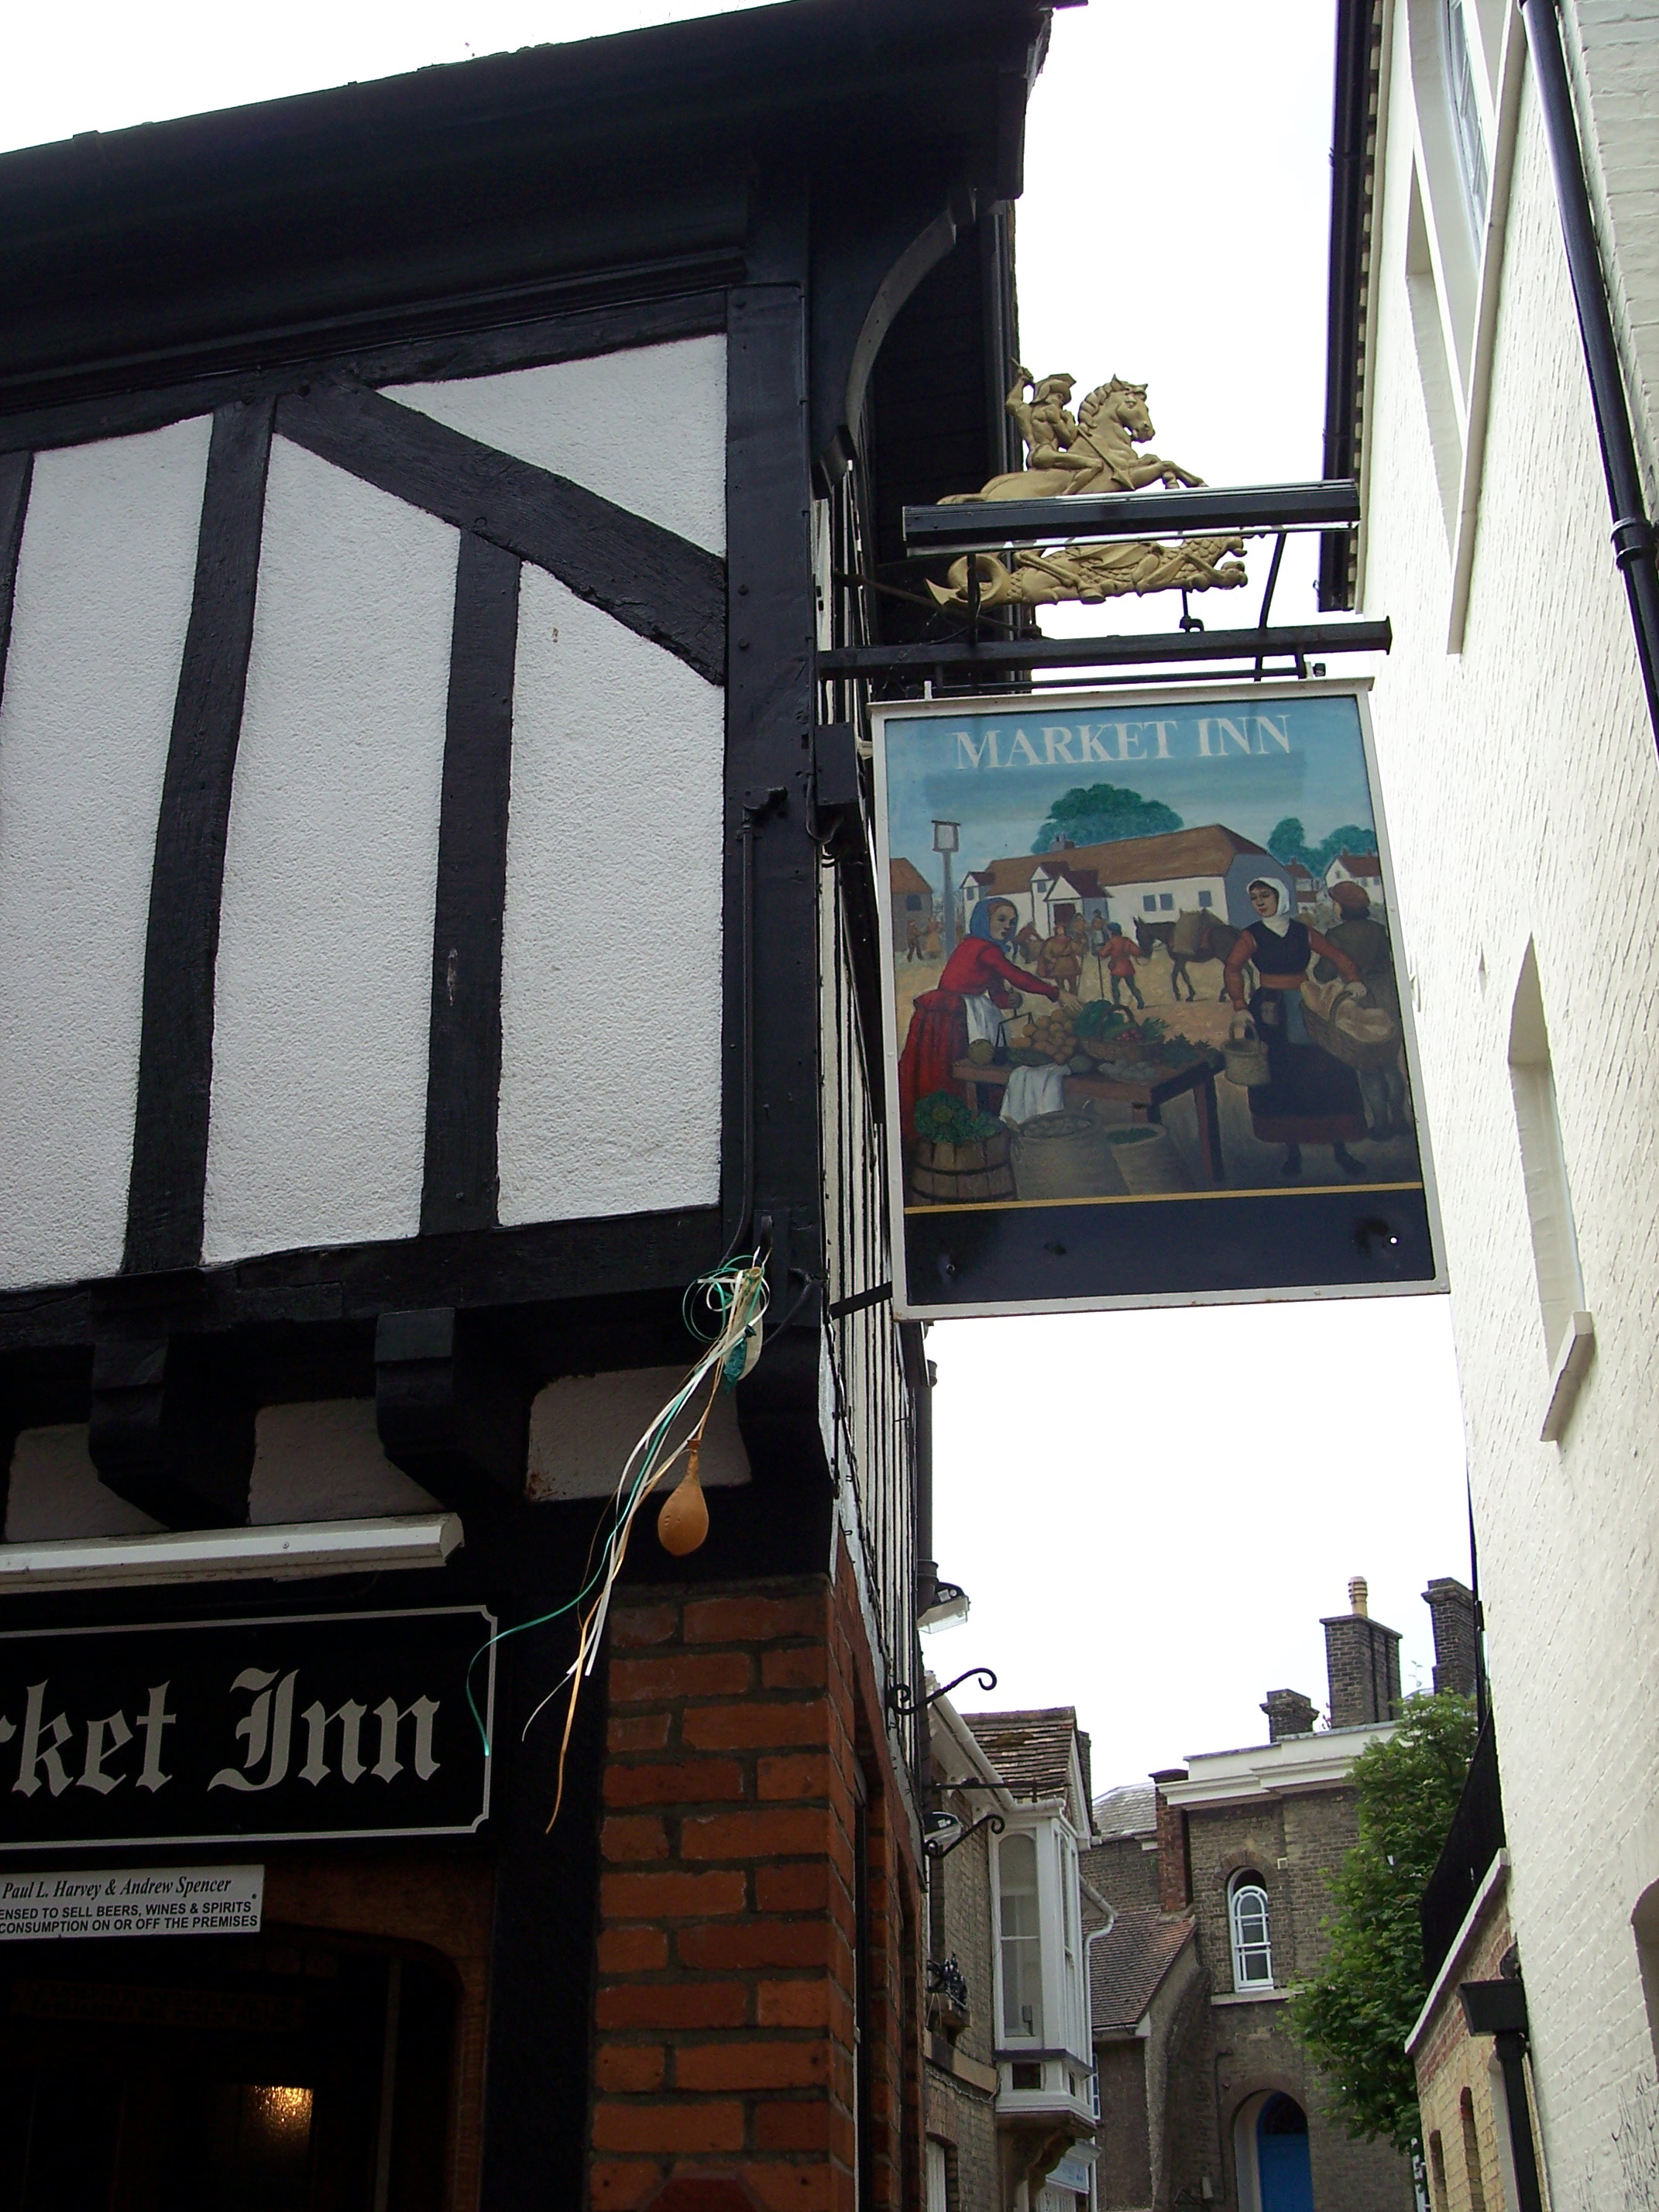 Oliver Cromwell was born in Huntingdon in 1599. He became Lord Protector in 1653, the head of a British republic. After leaving school Cromwell studied briefly at Cambridge before marrying and settling in Huntingdon. He later lived in St Ives and Ely.  The picture shows the town of Huntingdon  in Ma...